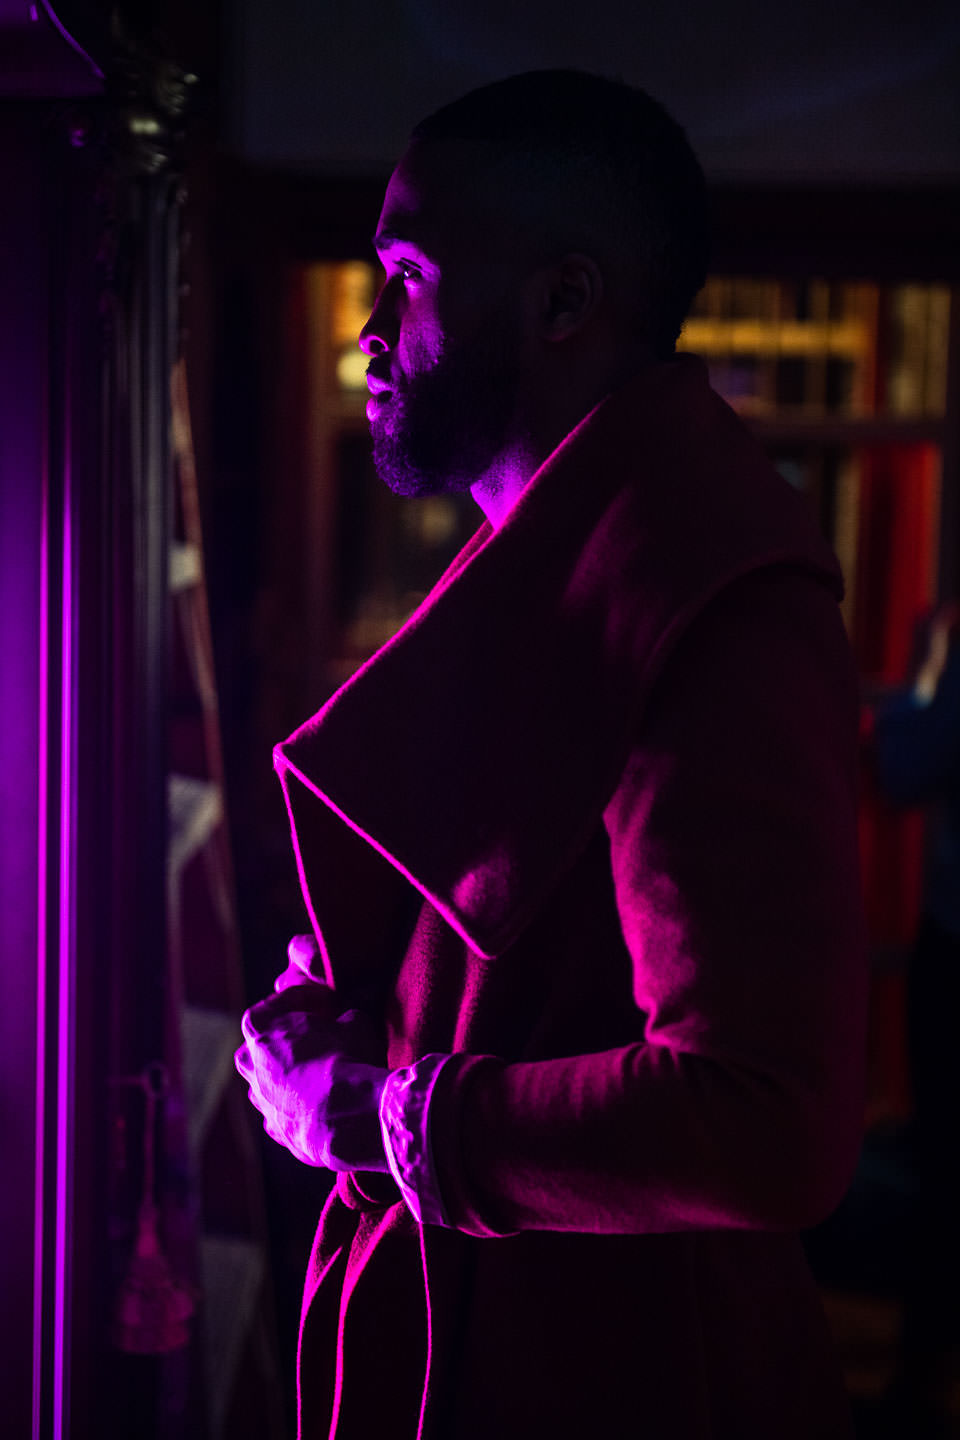 african male model with purple light fixes his jacket